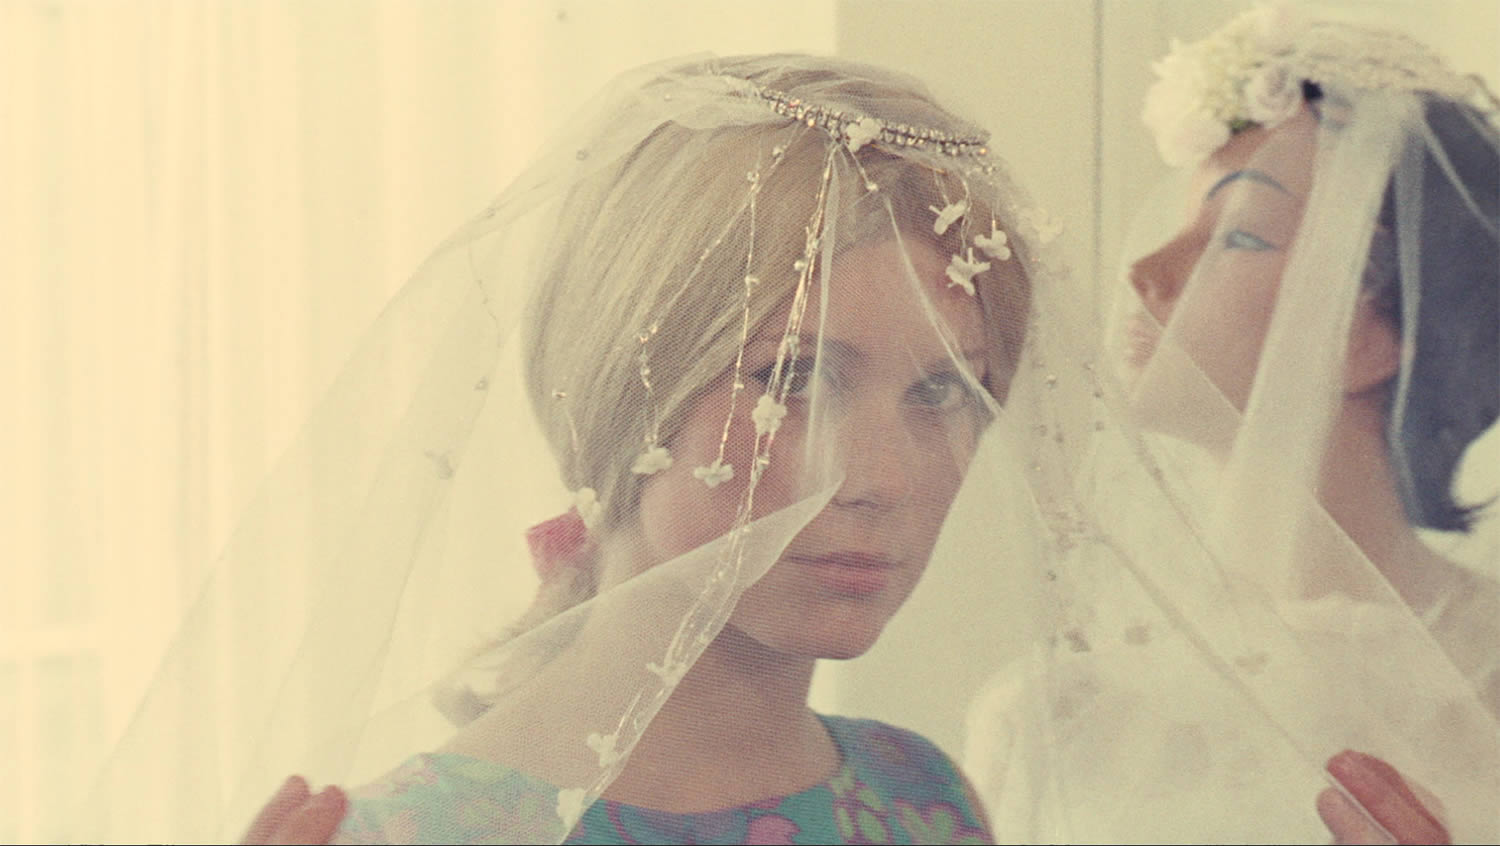 catherine deneuve getting ready to be a wedding bride, The Umbrellas of Cherbourg